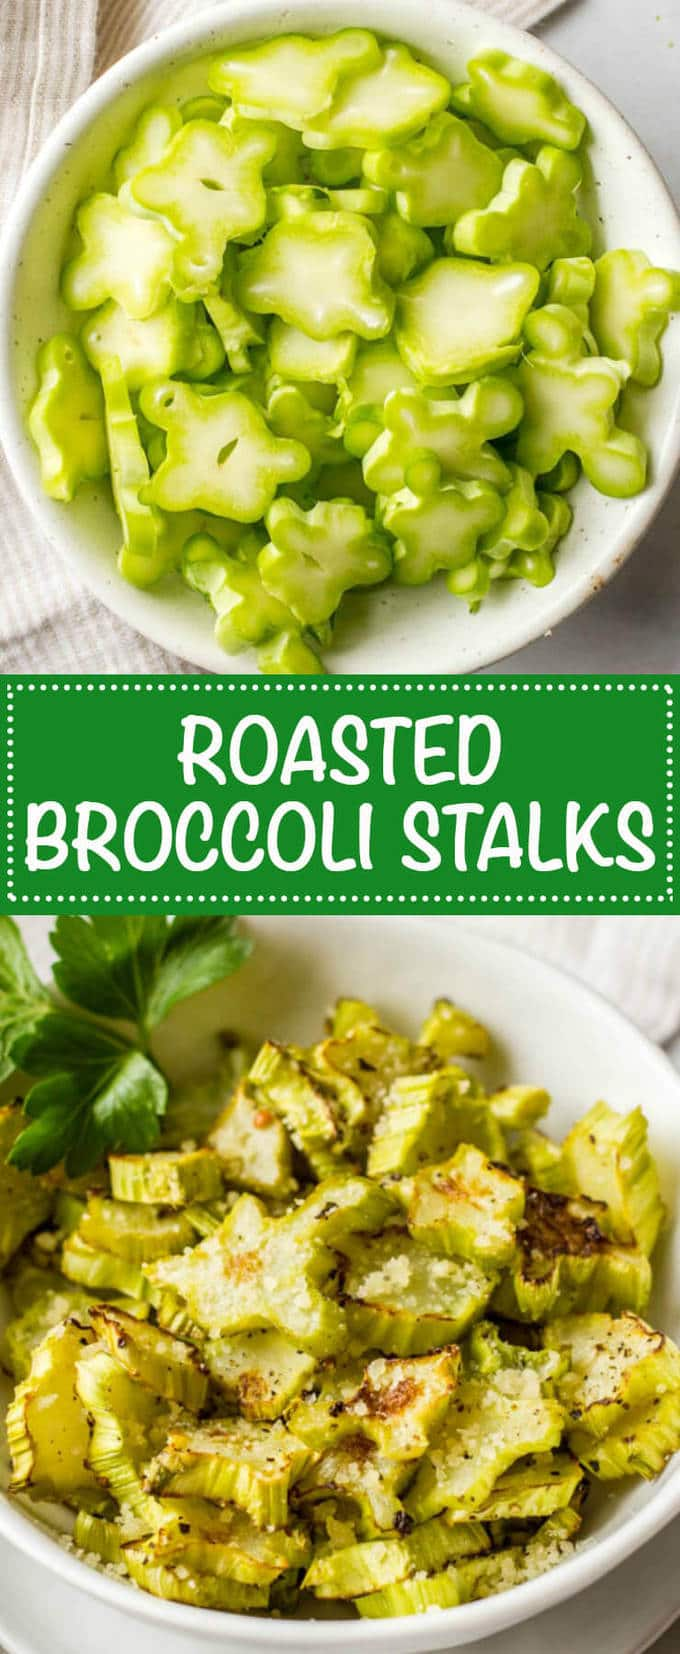 Roasted broccoli stalks — or coins — are a great + tasty way to incorporate broccoli stems and reduce food waste! | www.familyfoodonthetable.com